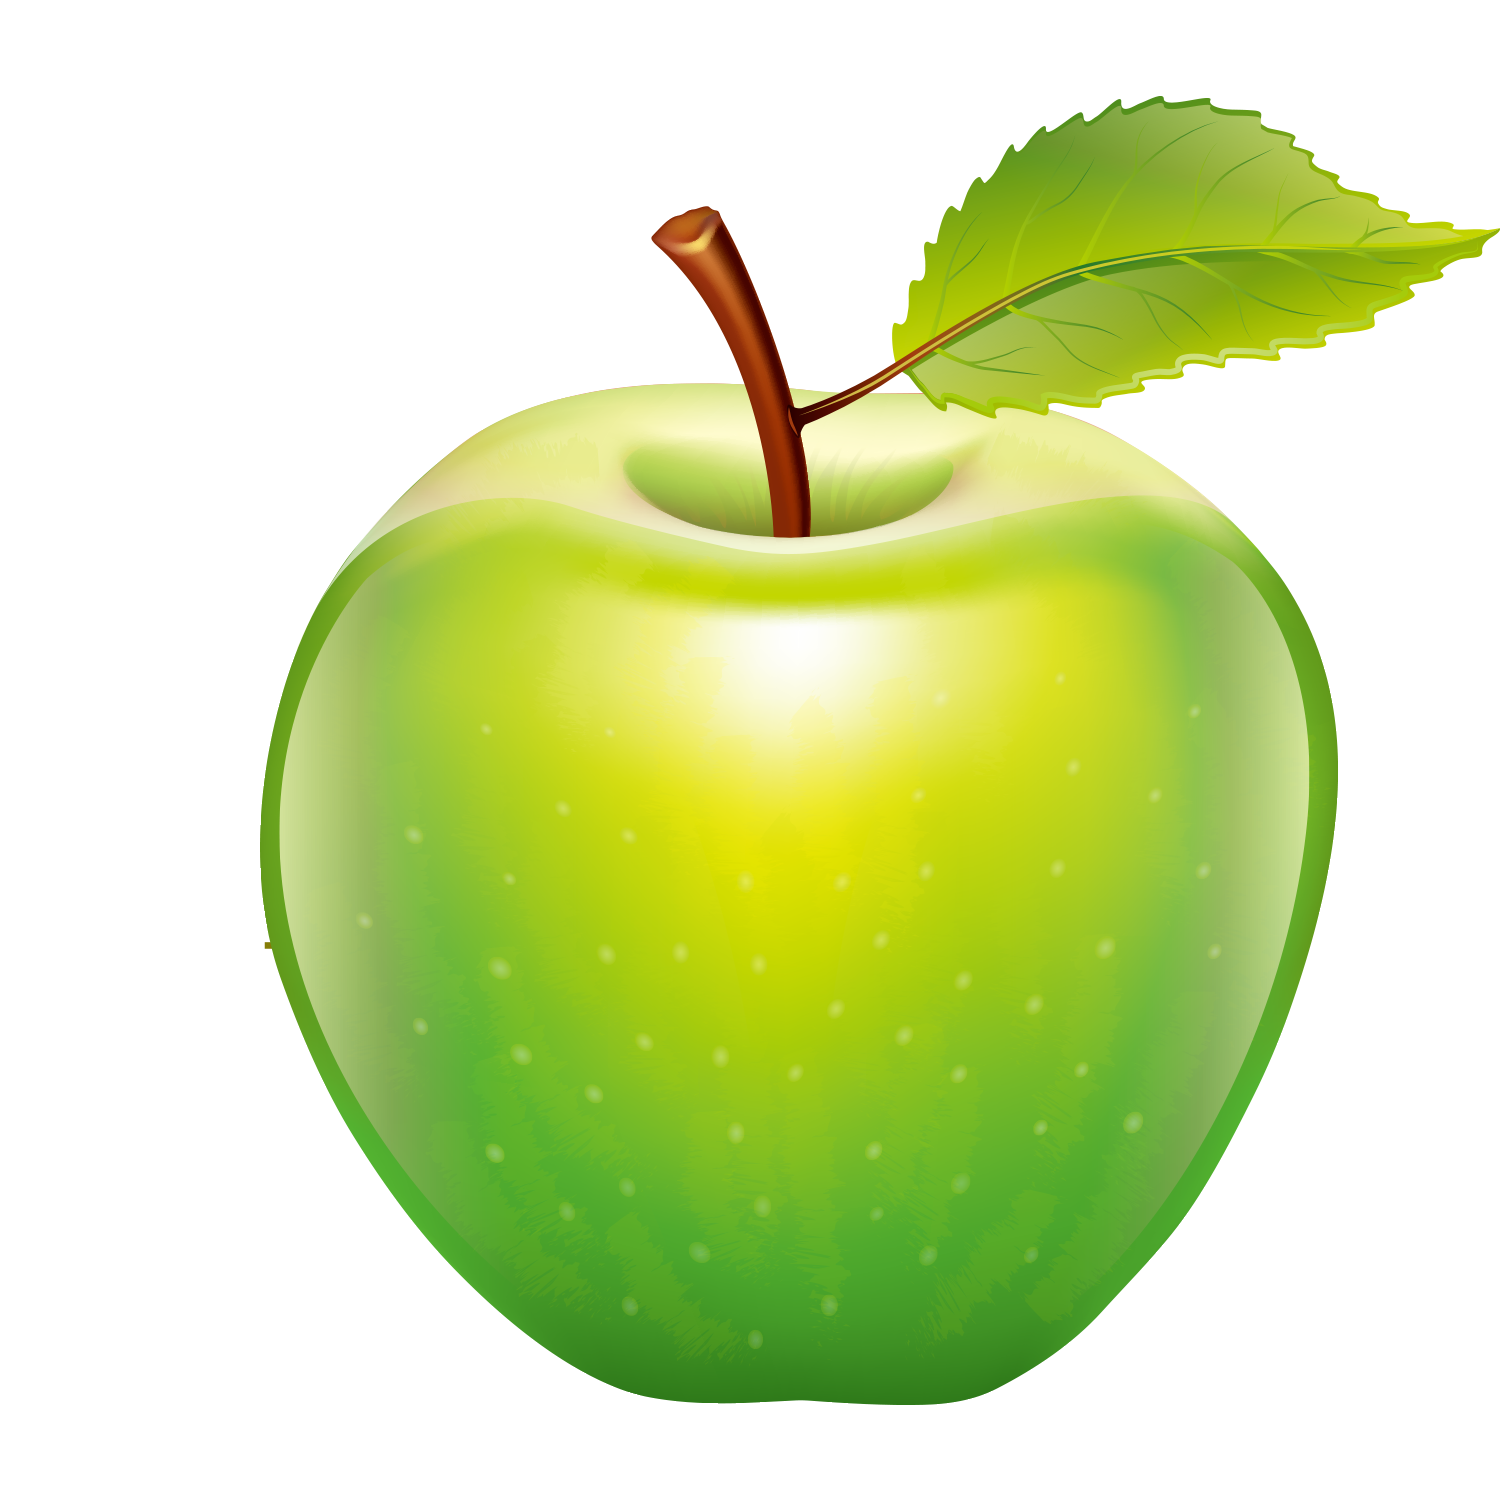 Vector vegetables realistic. Apple tape measure icon